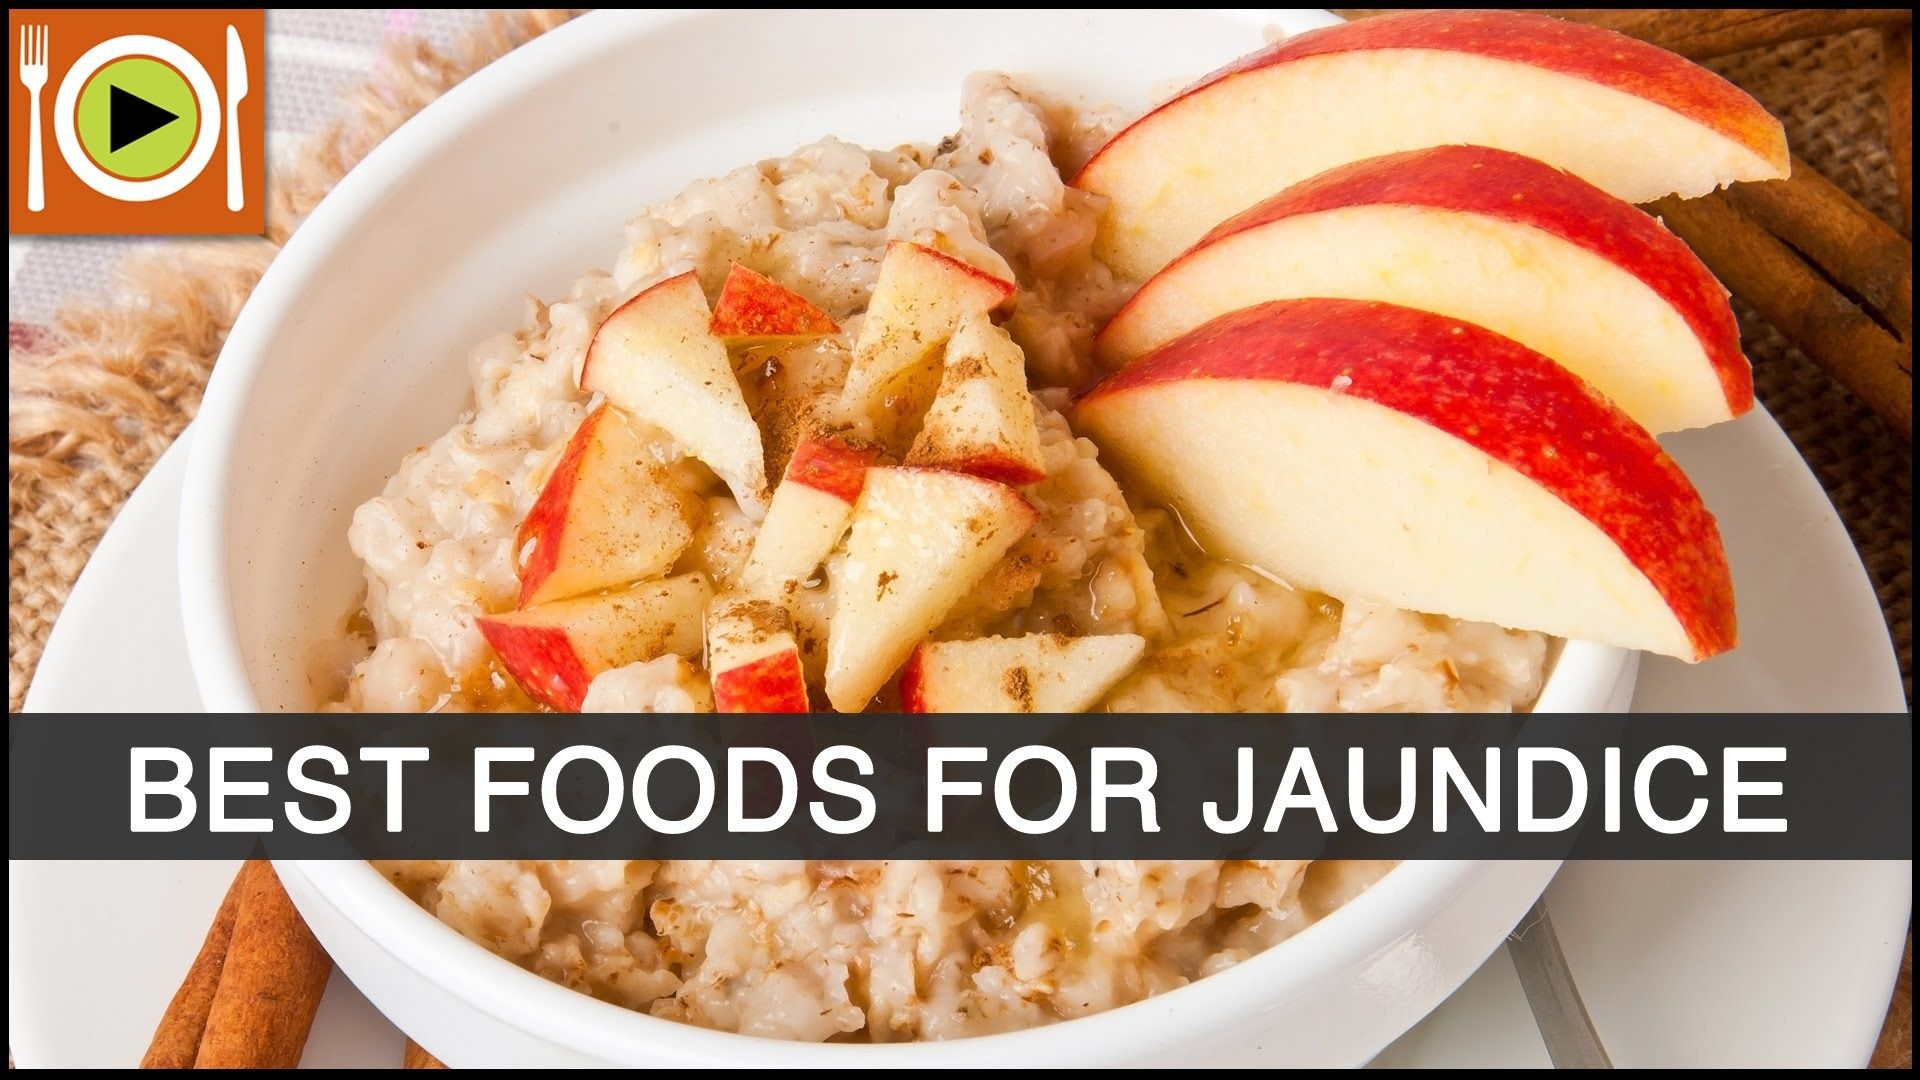 Best foods to cure jaundice healthy recipes httpswww best foods to cure jaundice healthy recipes httpscookingnovel forumfinder Choice Image